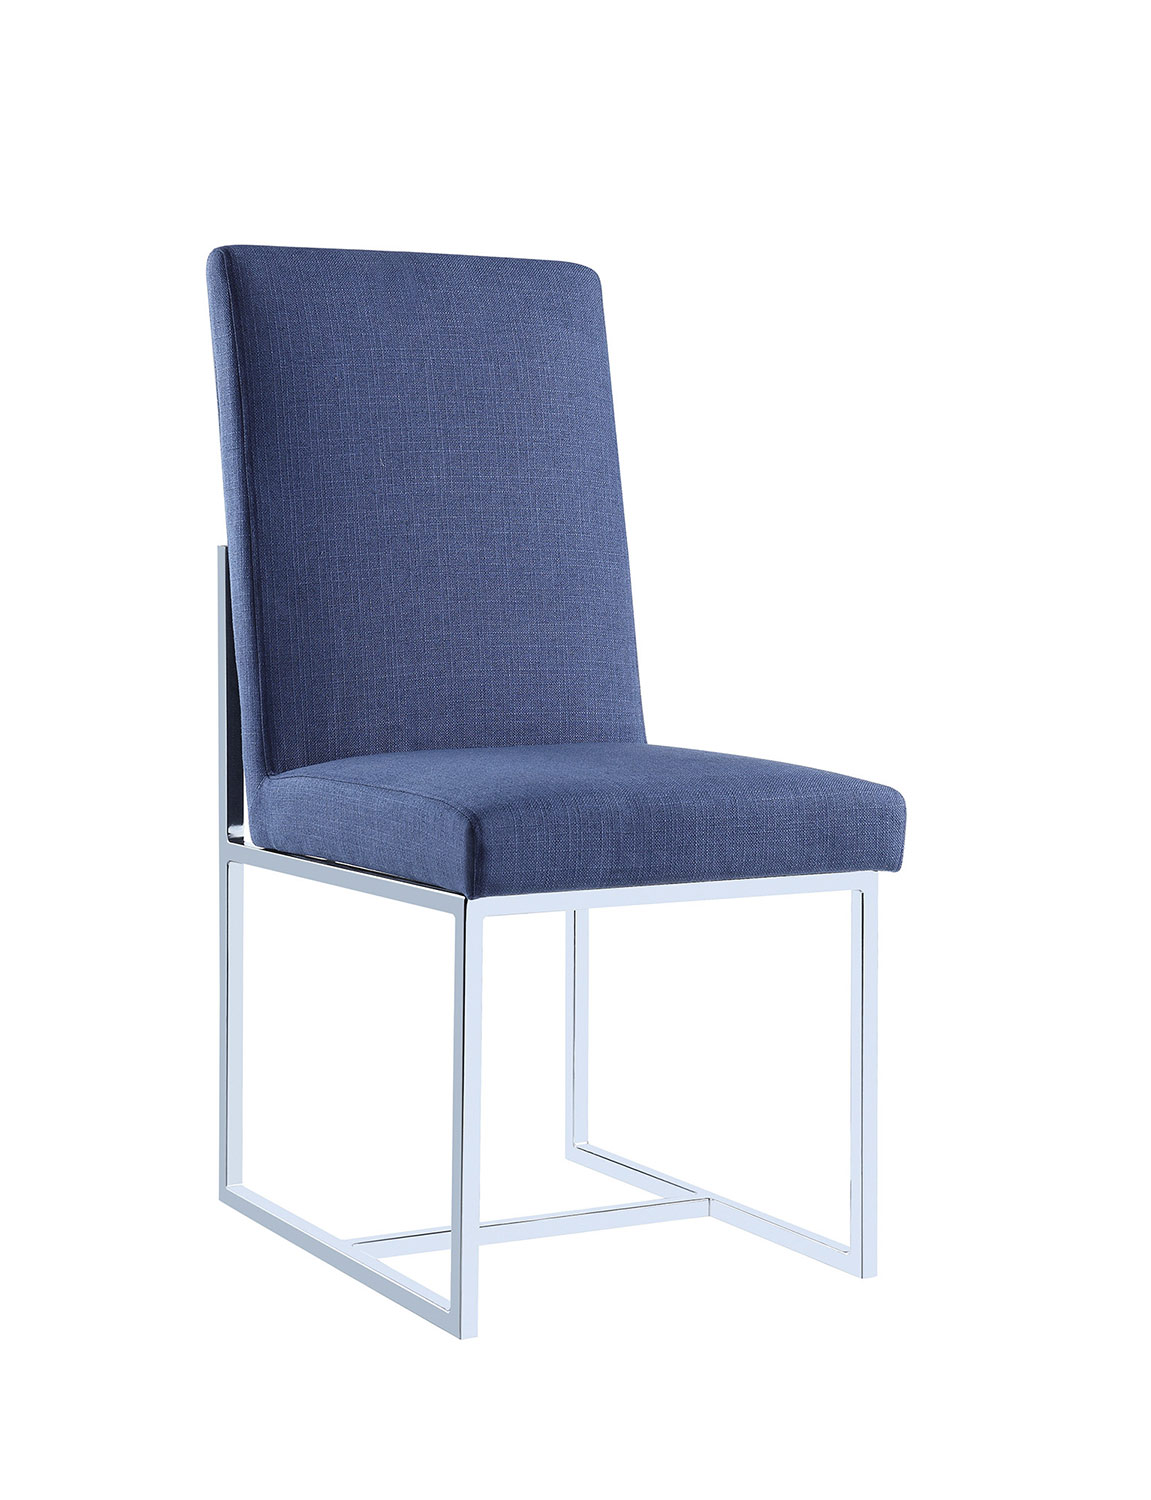 Coaster 107142 Side Chair - Blue